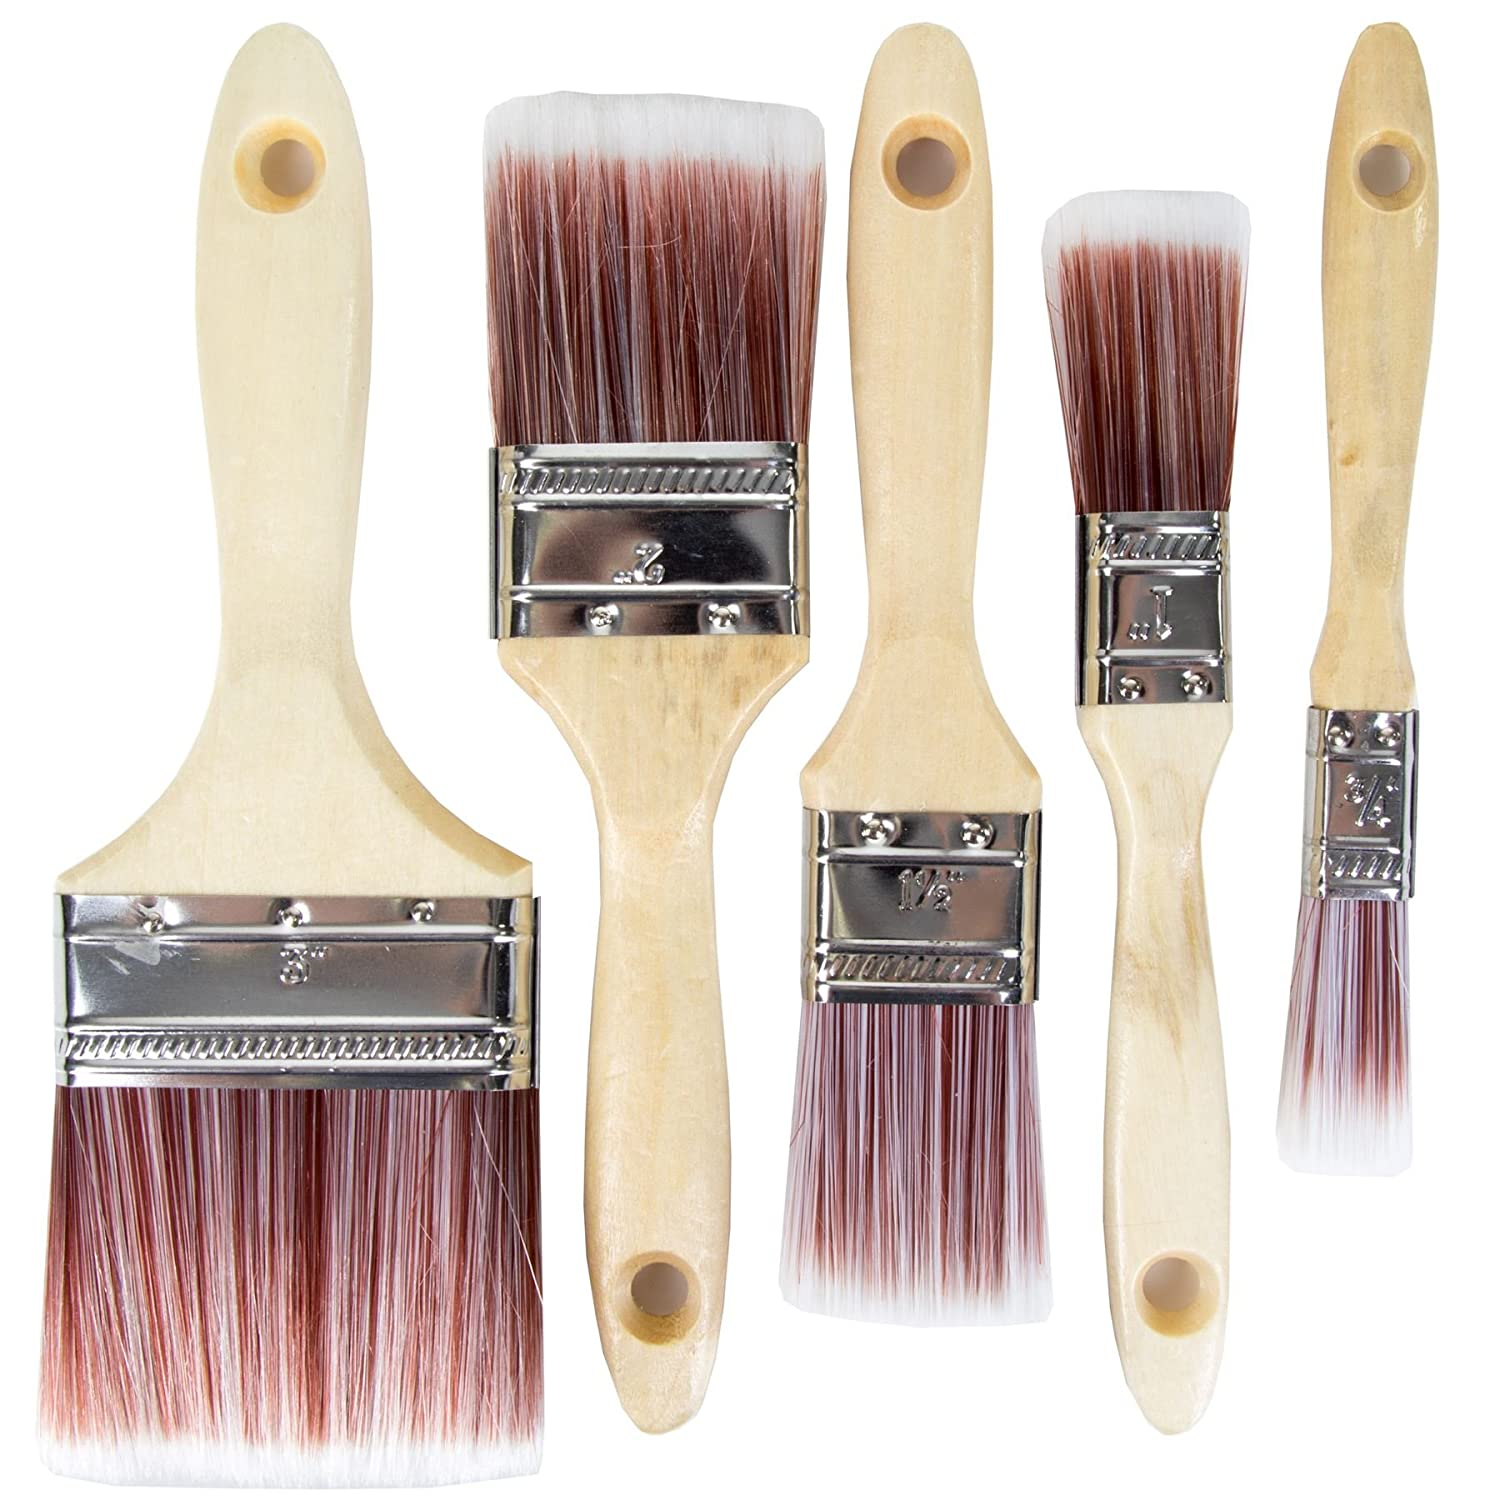 Professional Quality Synthetic Paint Brush Set With Detailing & Wide Brush 19-75mm (Pack Of 5 Brushes) White Hinge